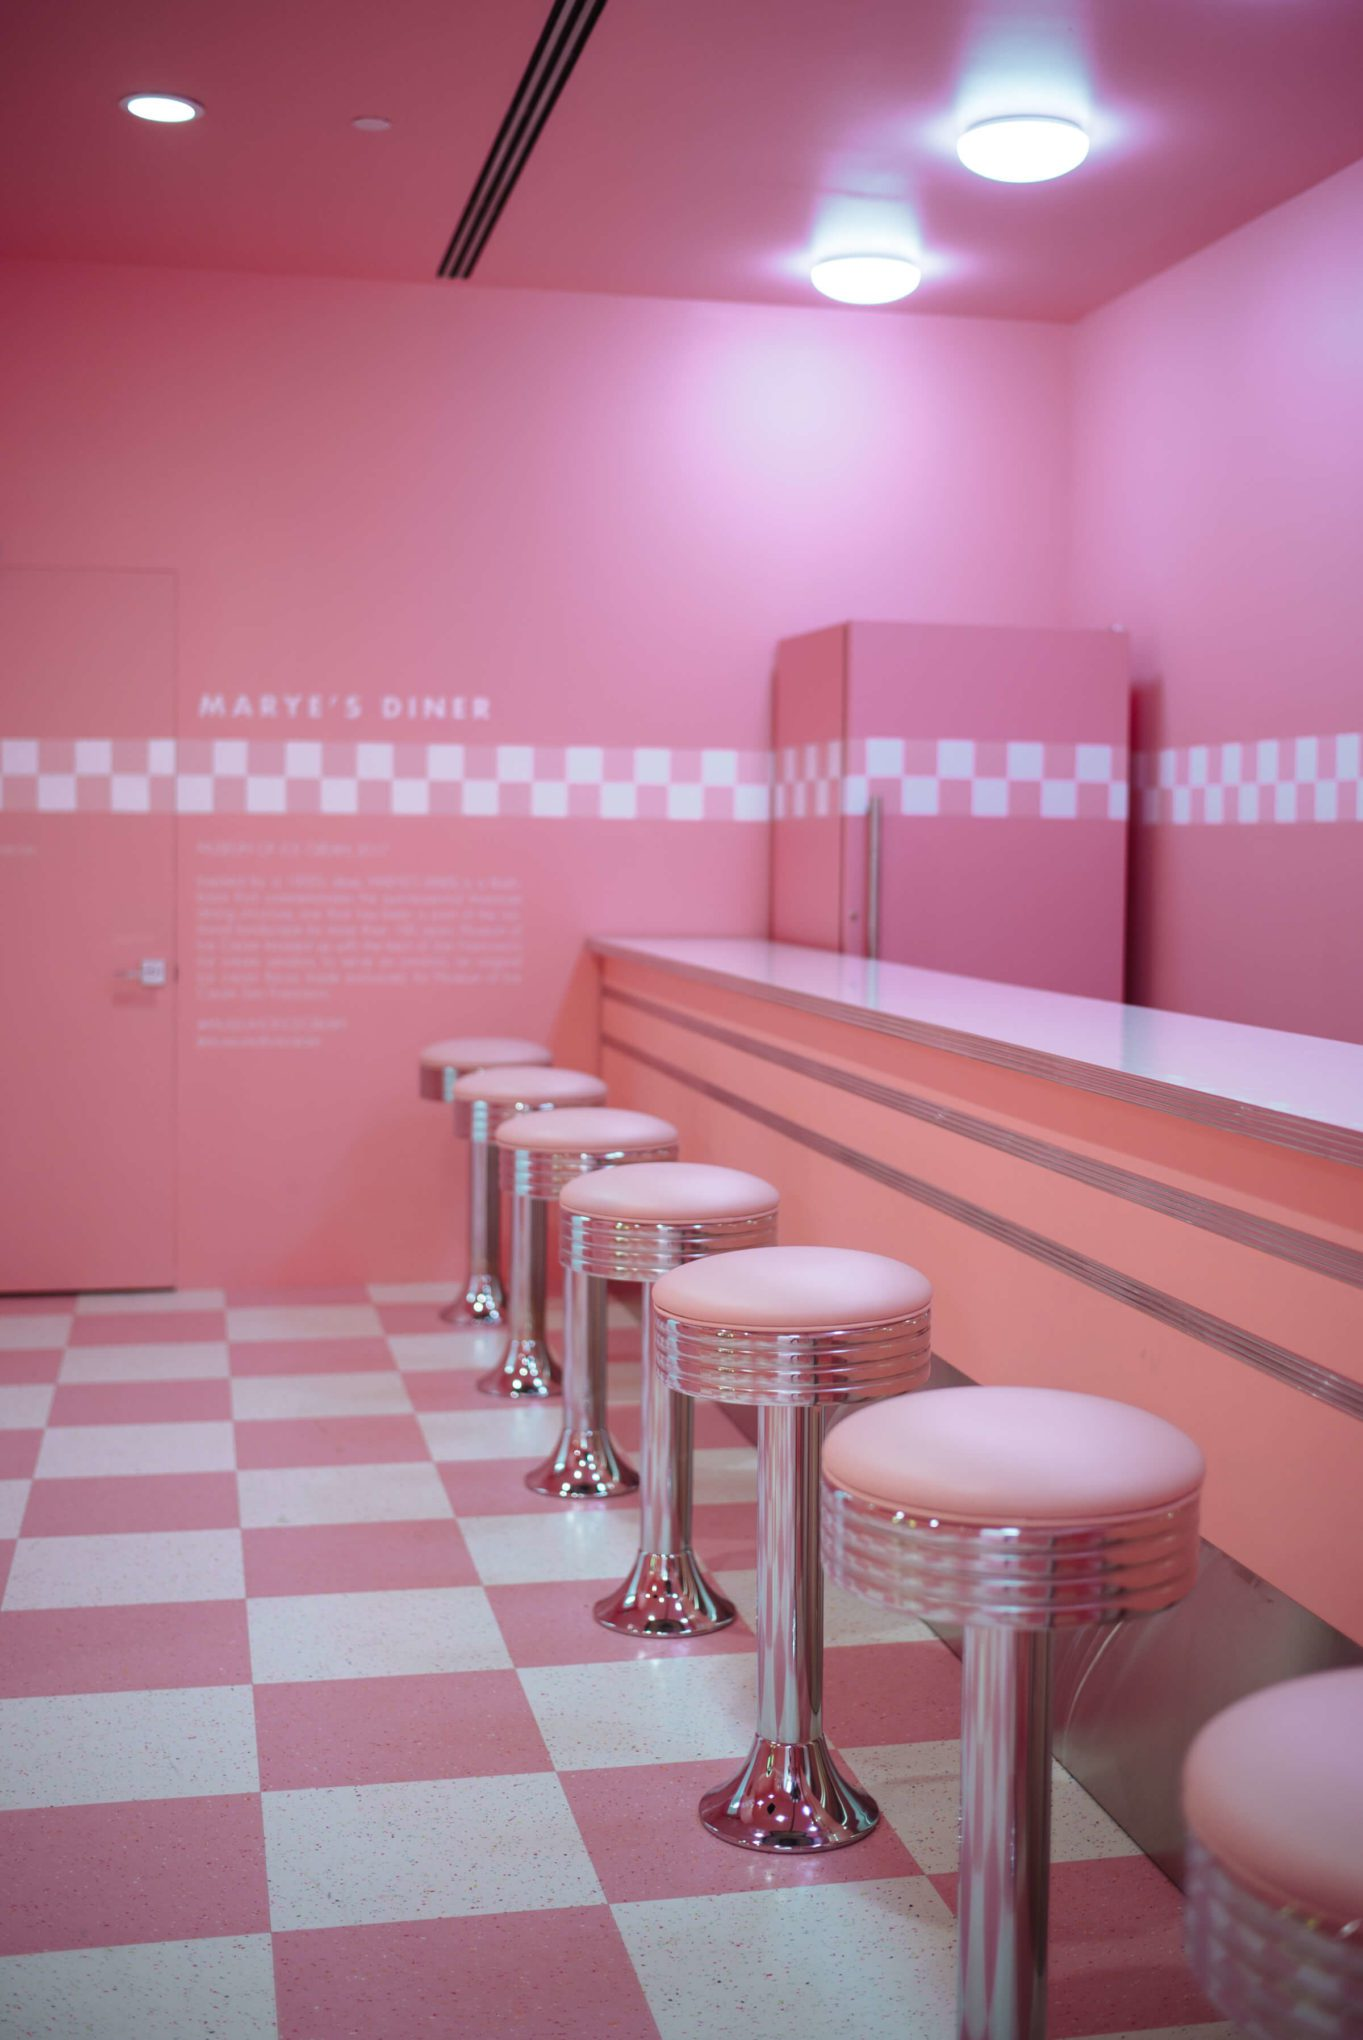 50s Dinner Soda Shop at The Museum of Ice Cream San Francisco, The Taste Edit